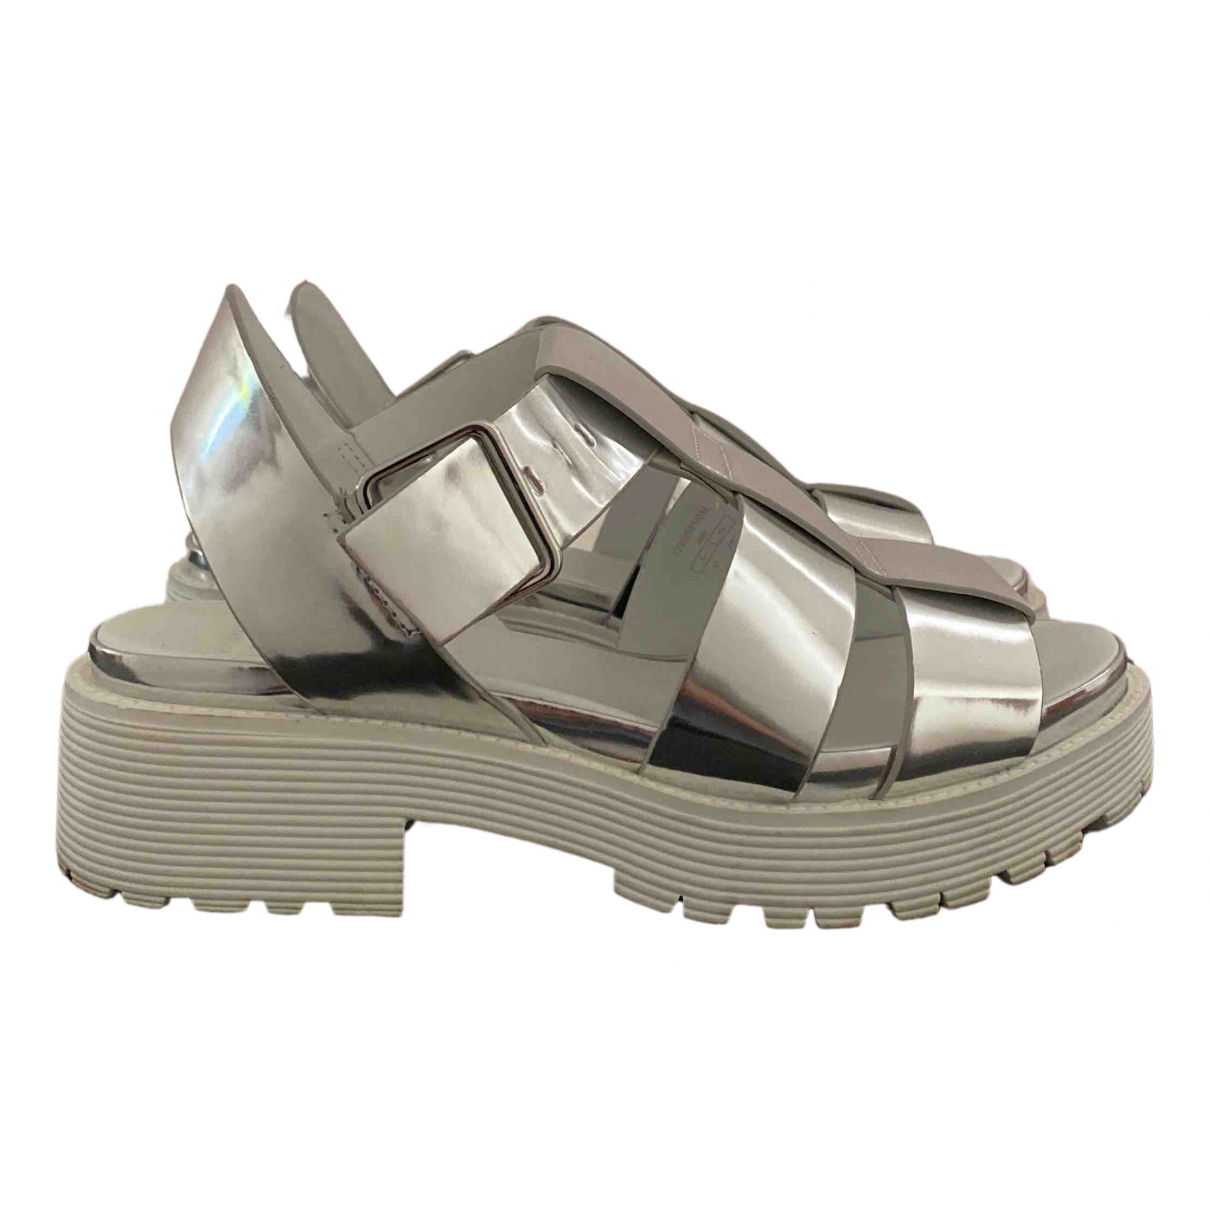 Zara N Silver Patent leather Sandals for Women 37 IT